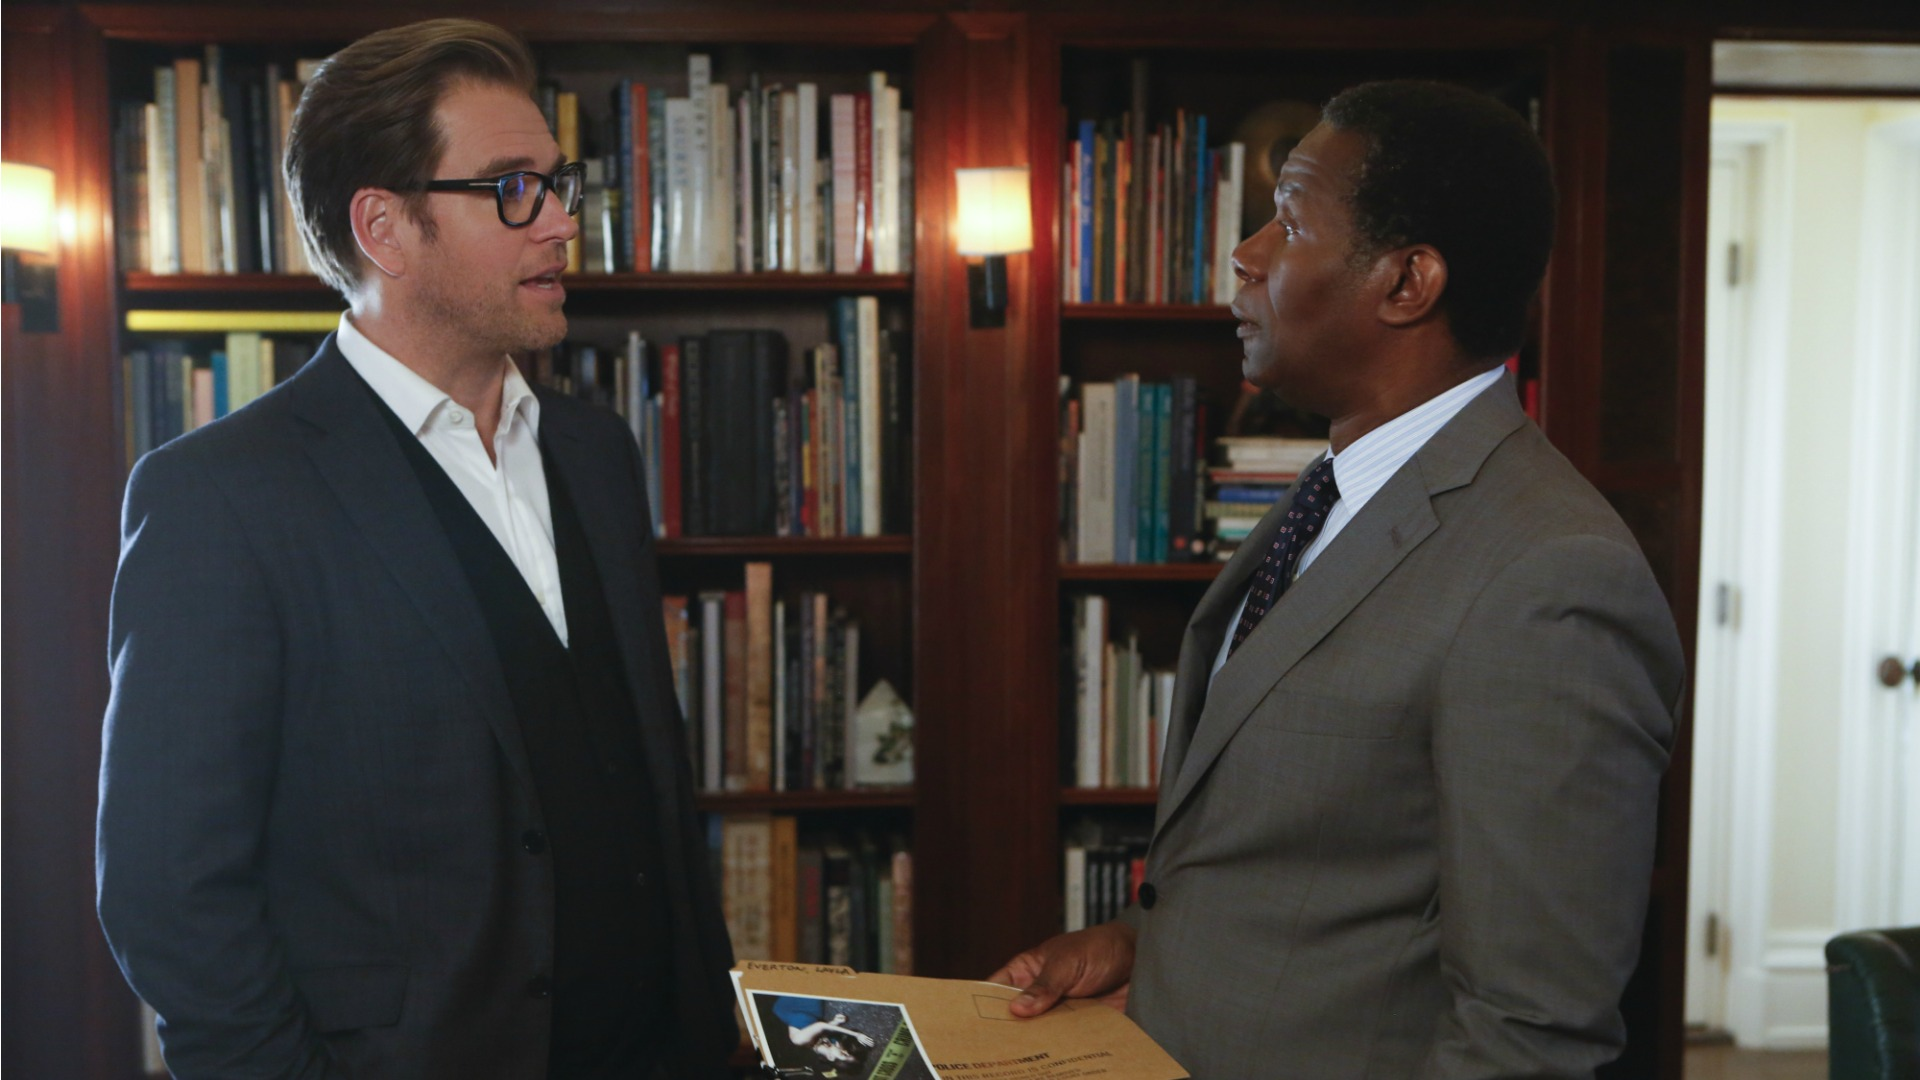 Bull goes over findings with Greg Perkins.